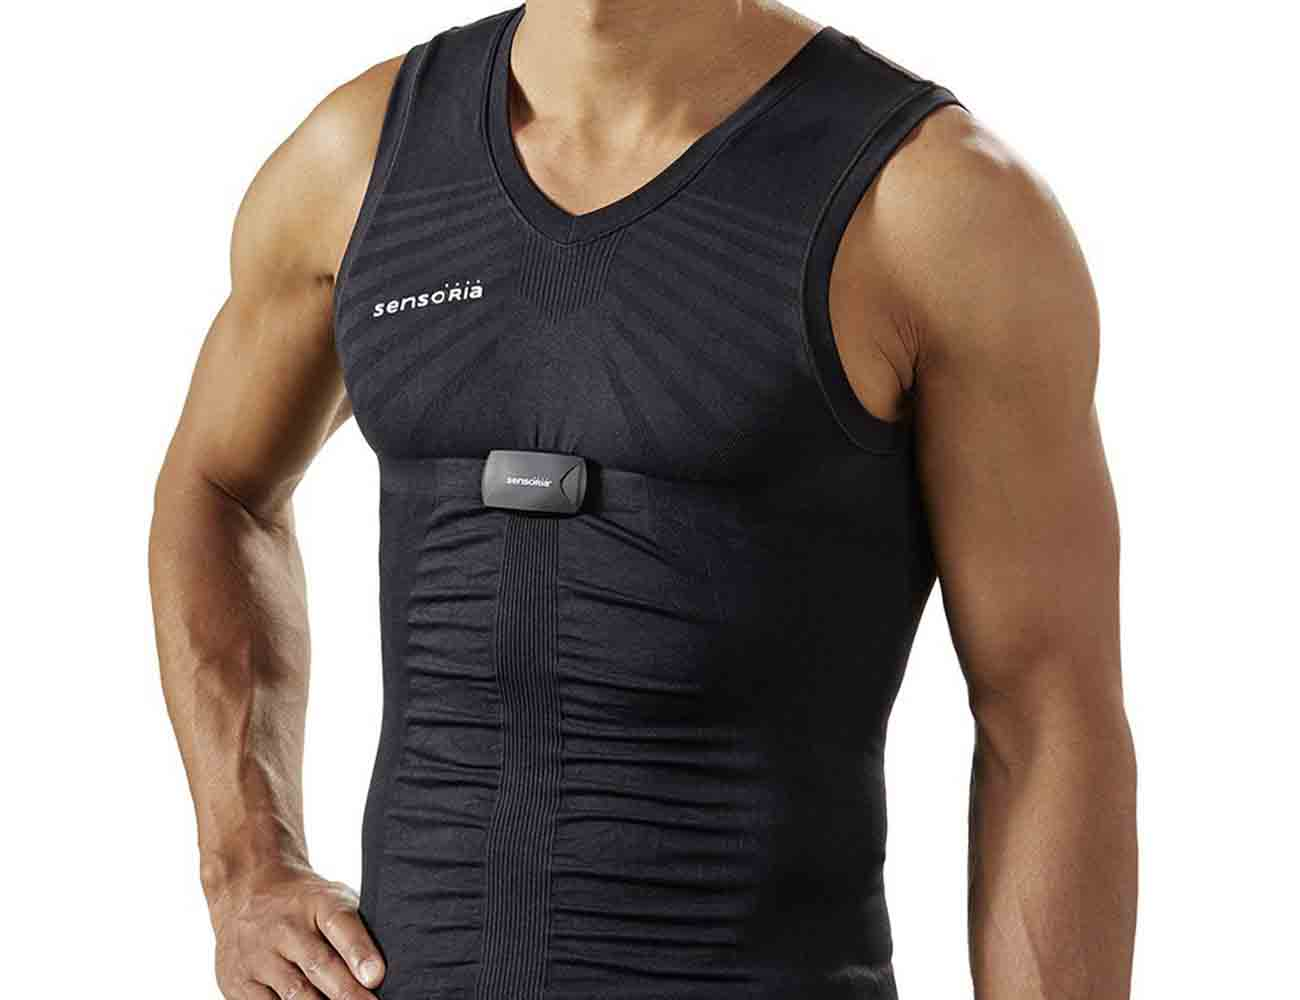 Sensoria Fitness Shirt with Heart Rate Monitor